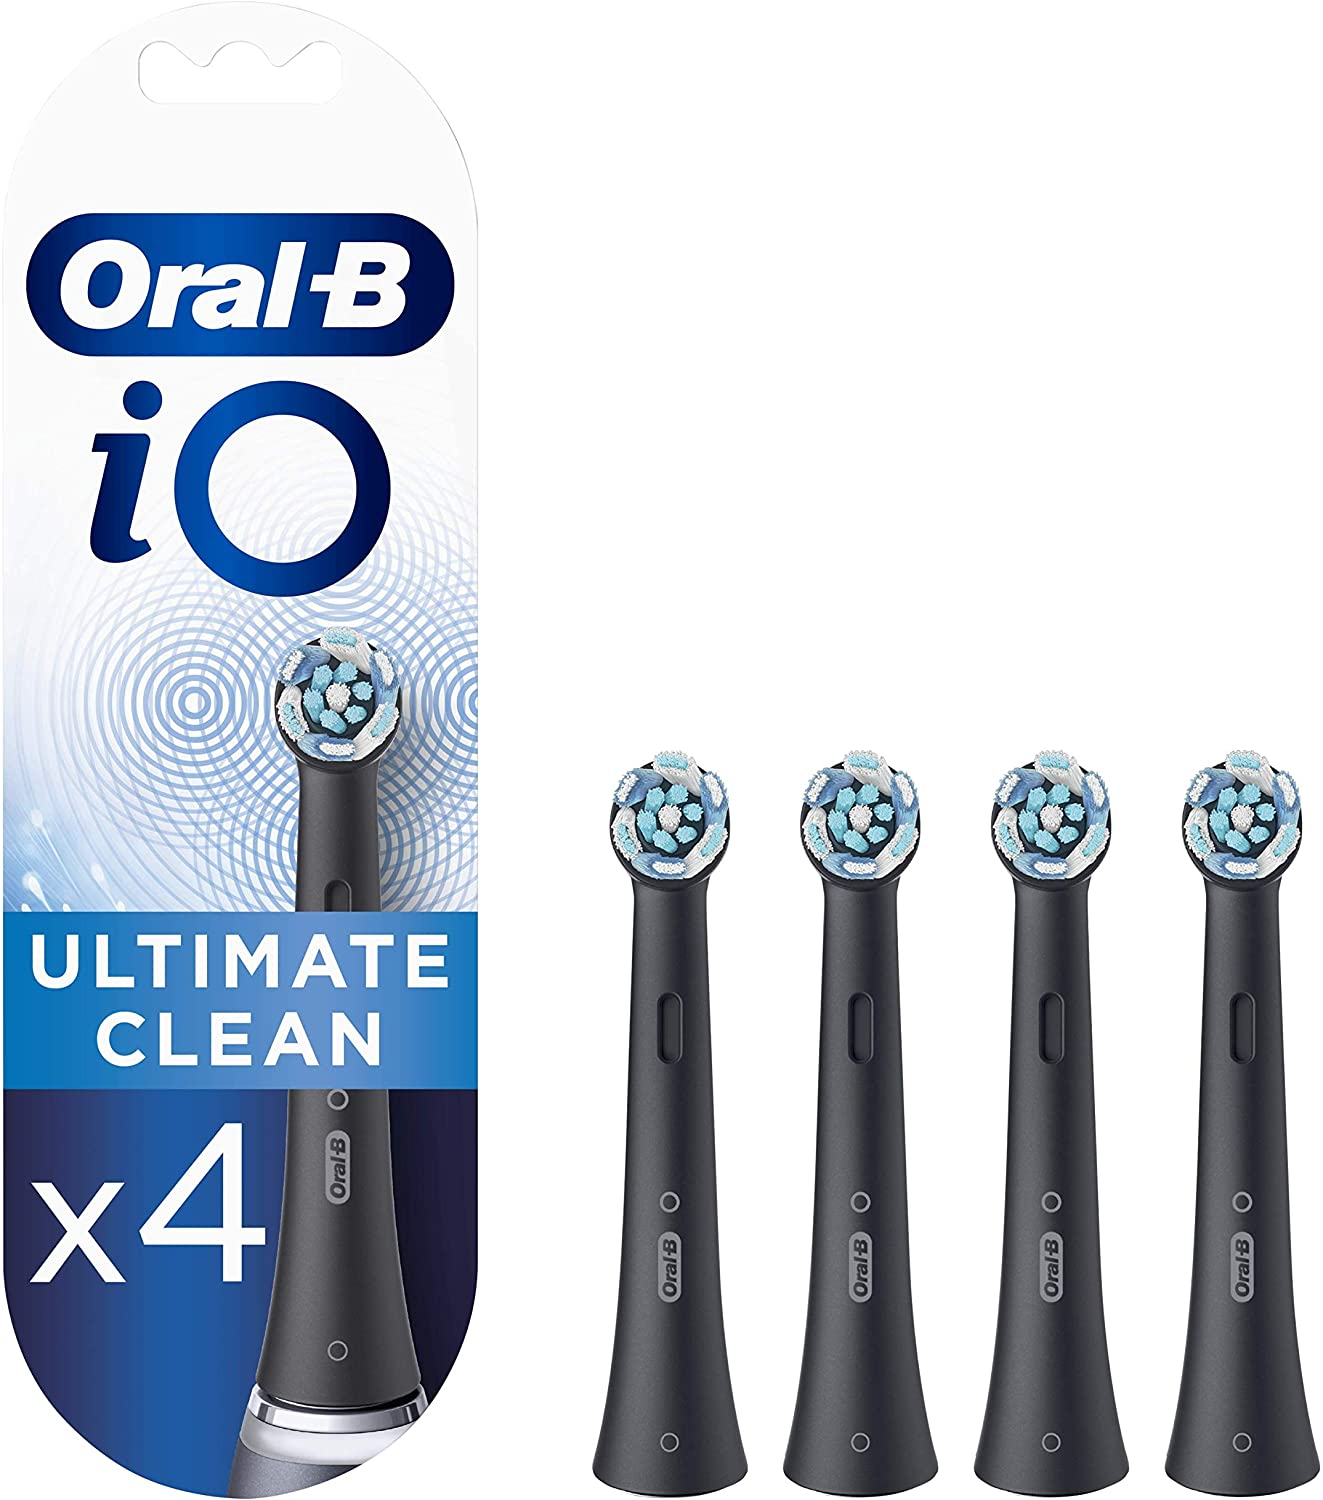 Oral-B iO Ultimate Clean Black Cabezales de recambio, Pack de 4 Unidades